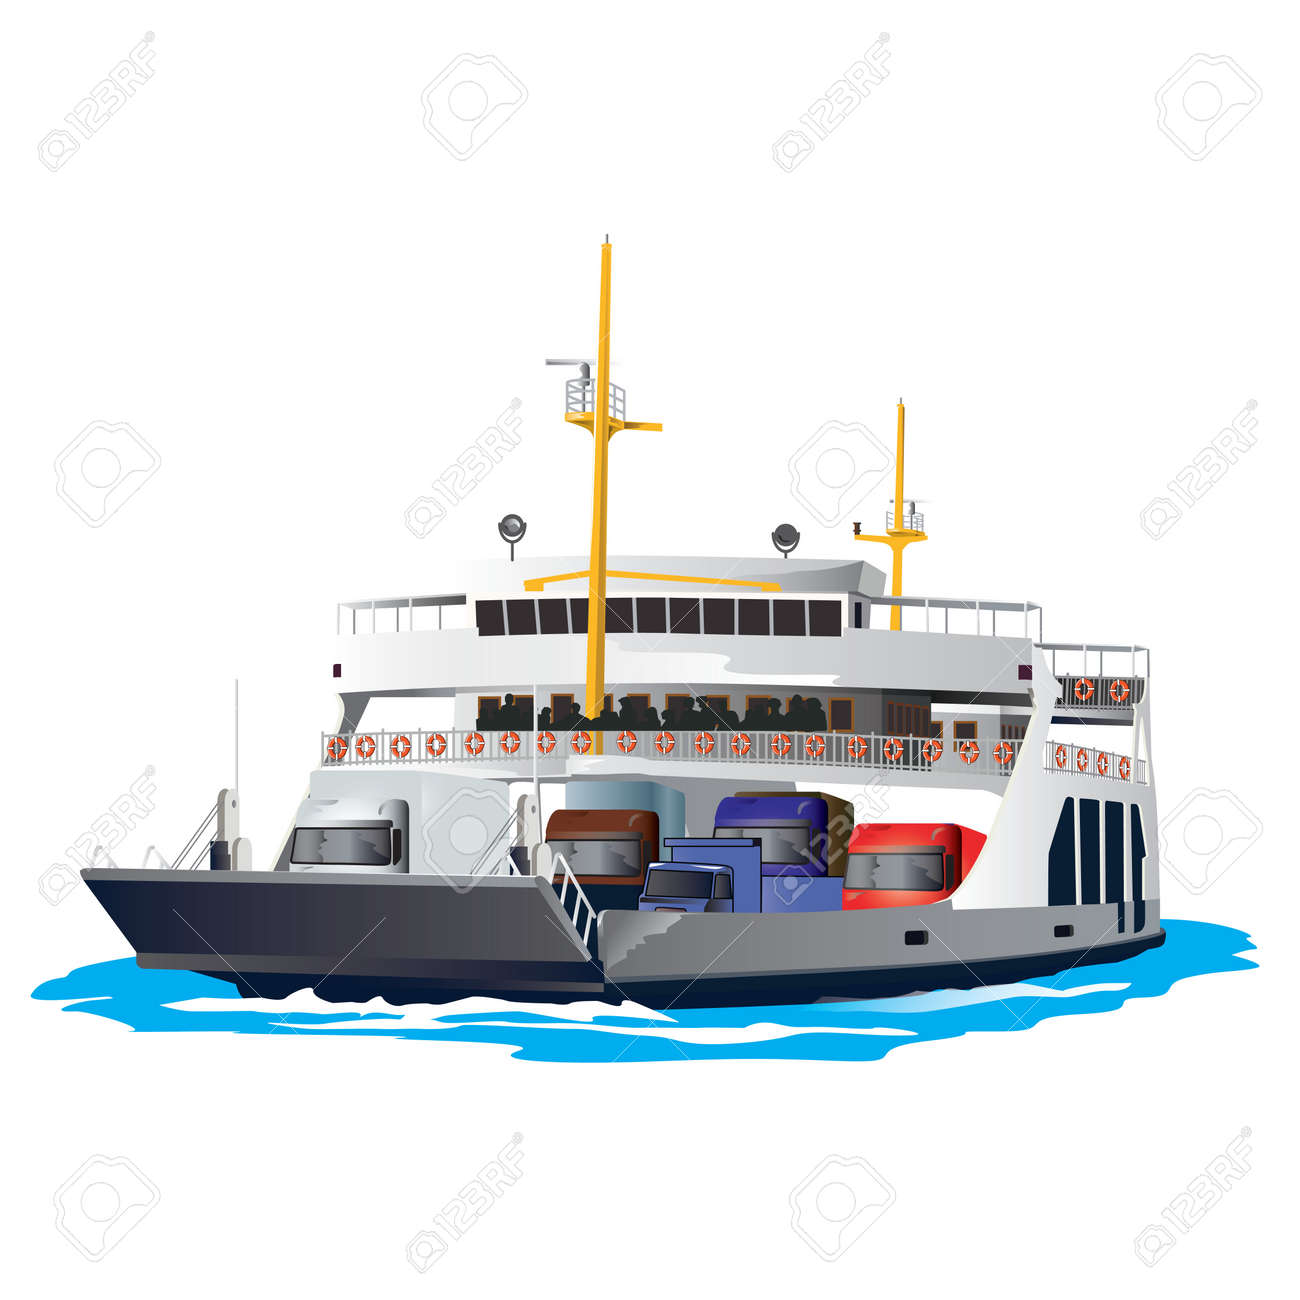 Ferry Boat isolated on white background. It is taking cars and trucks crossing the harbor. Vector, illustration. Stock Vector - 45222043